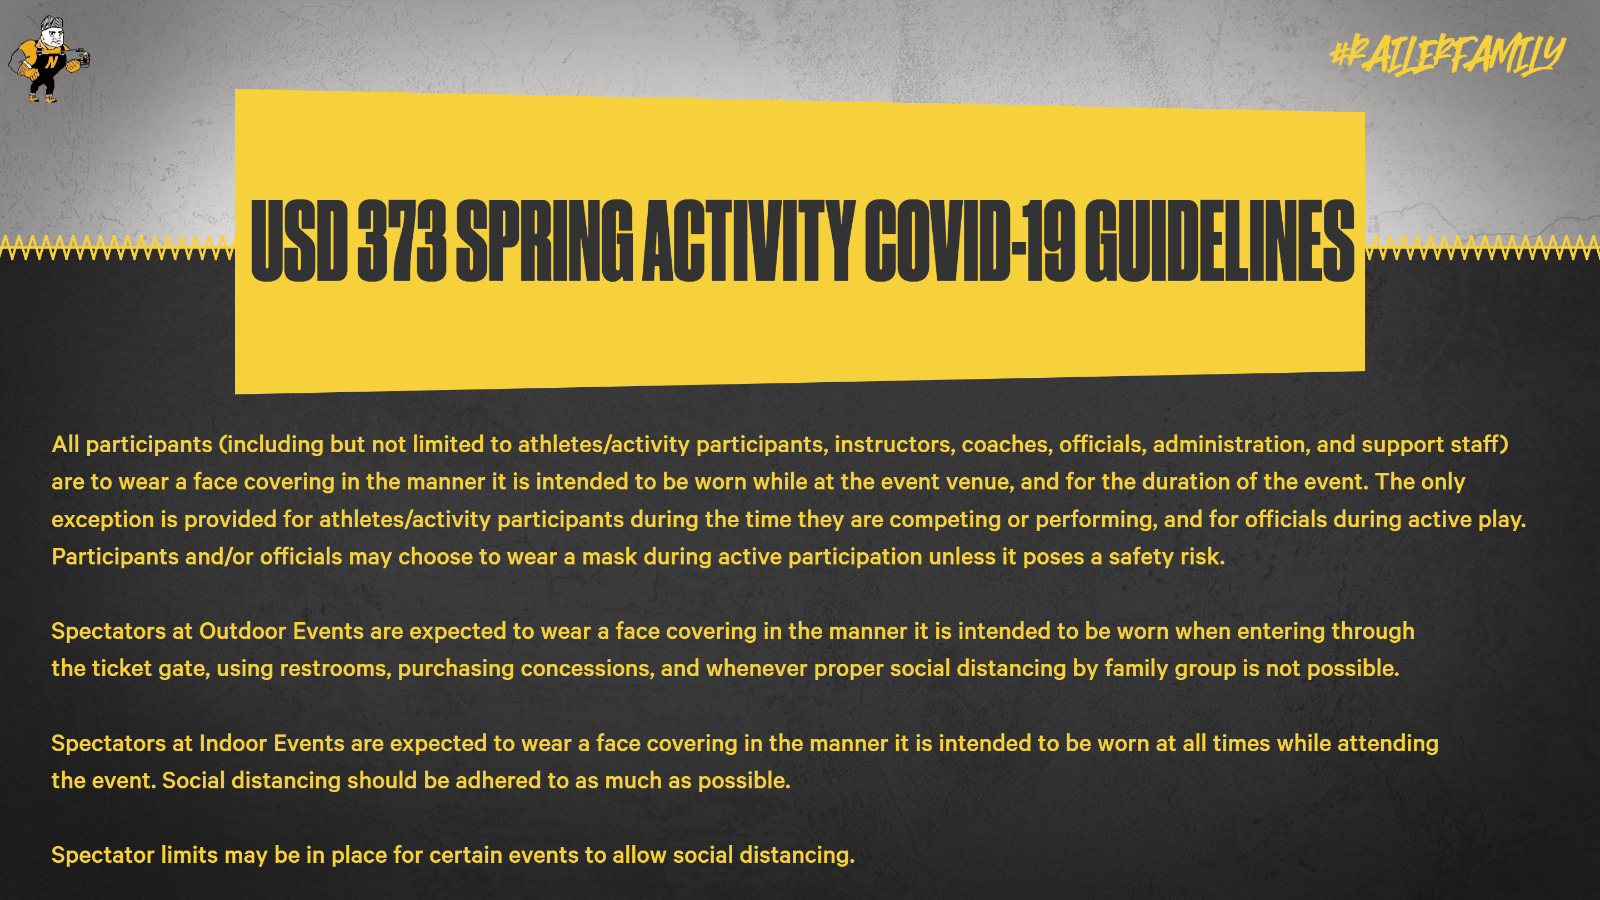 USD 373 Activity COVID-19 Guidelines